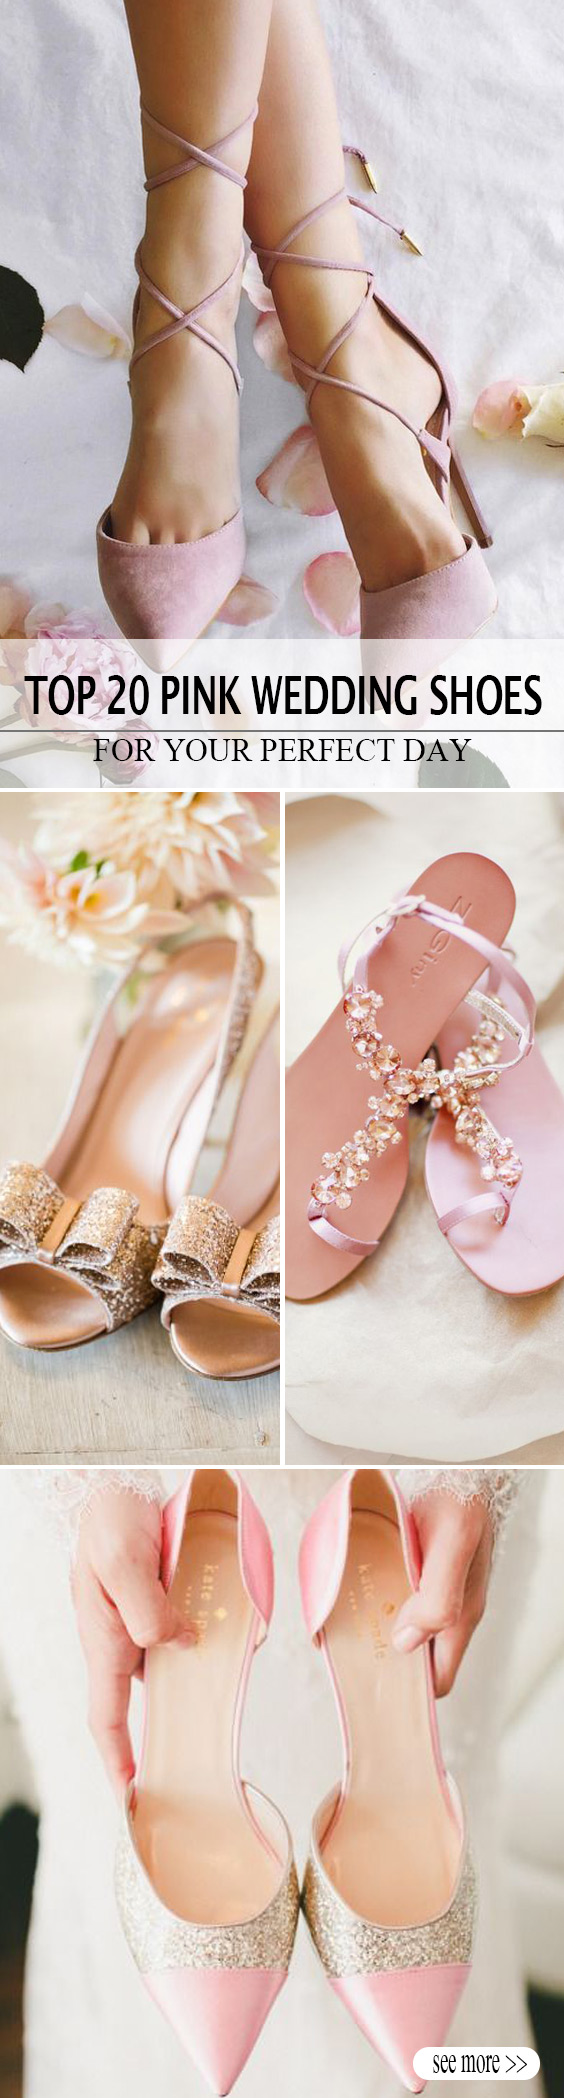 f6803d94d 20 Most Eye-catching Pink Wedding Shoes